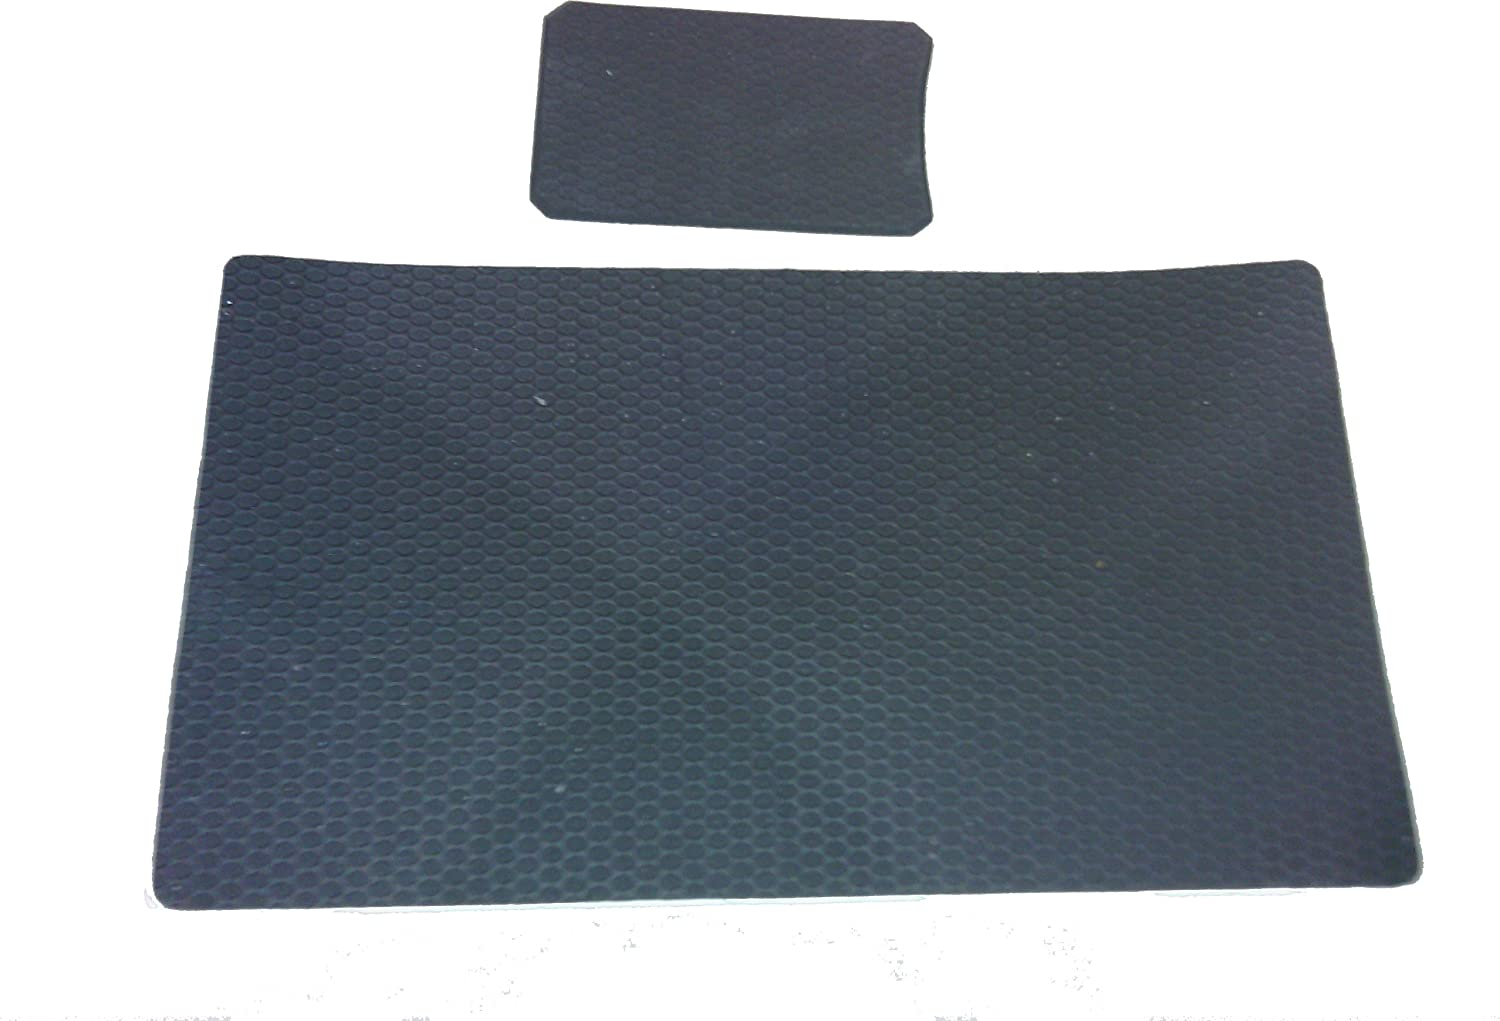 Releasable Adhesive TechSpec Tank Grips C3 Two 7.25 x 13 General Sheets General Sheets